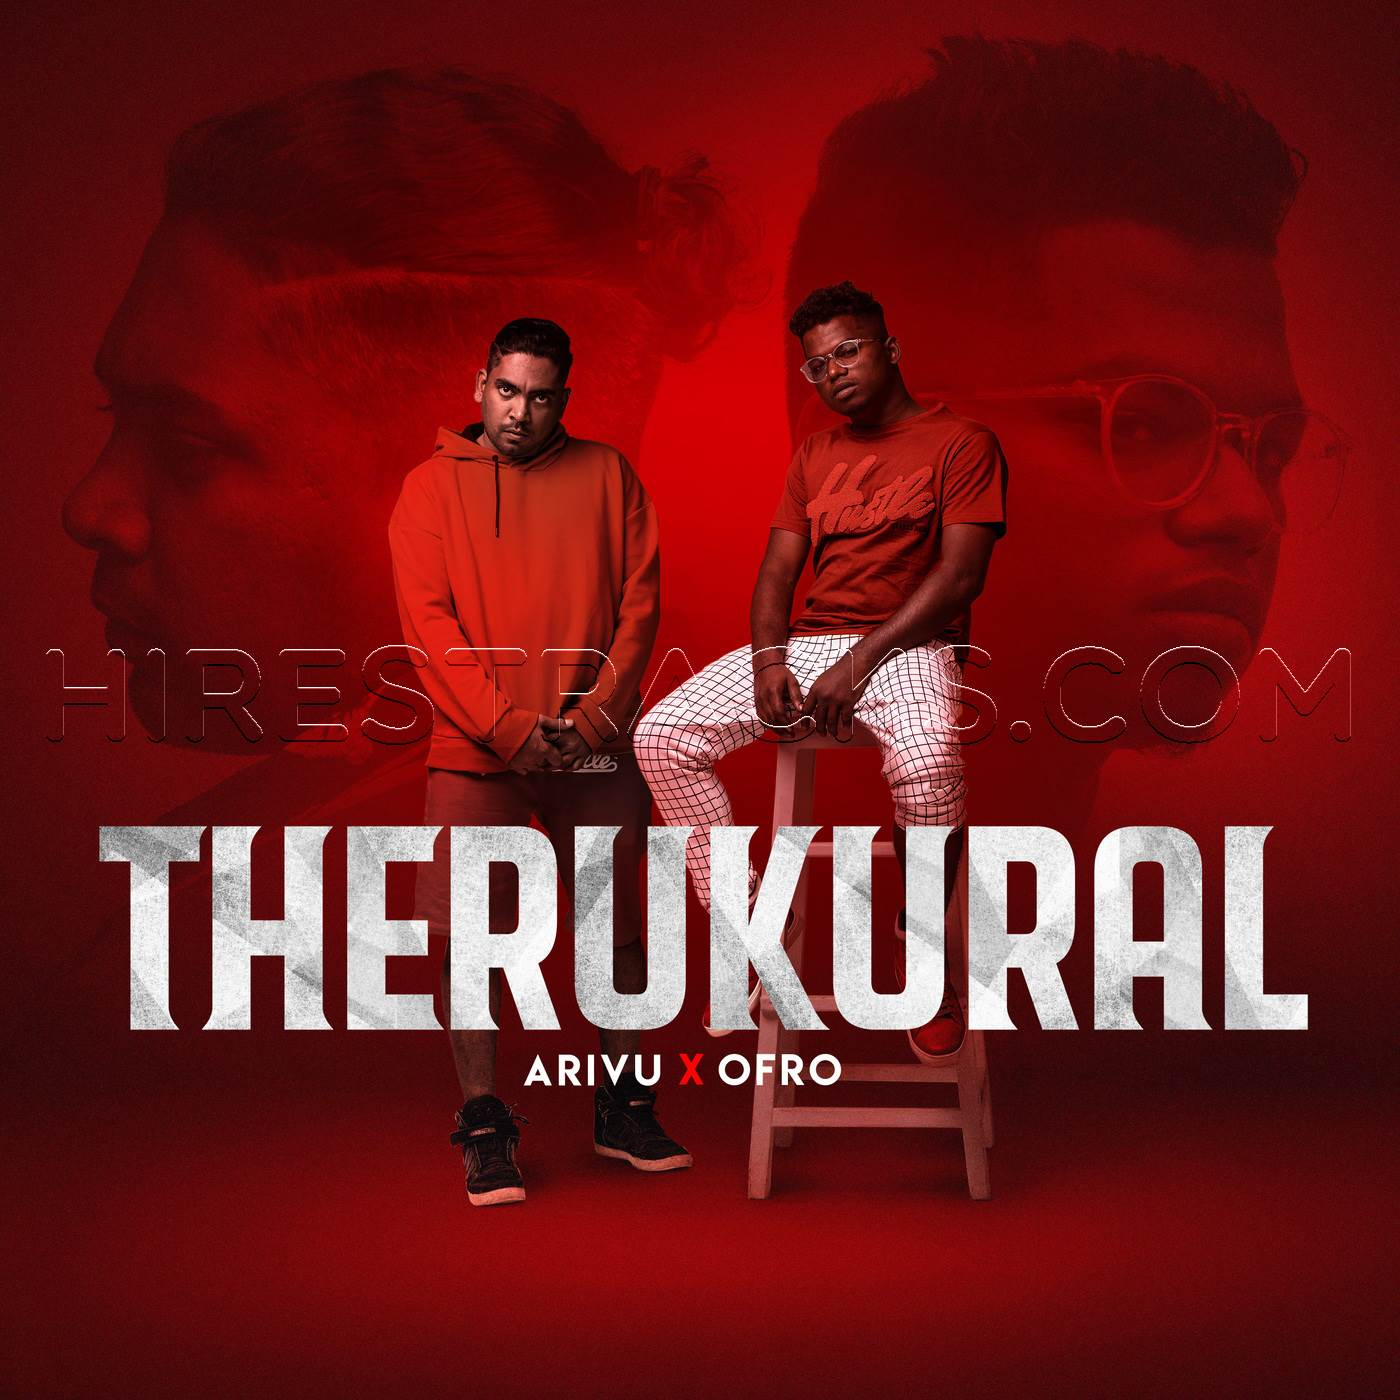 Therukural (2019) (ofRO) (Independent) 👌